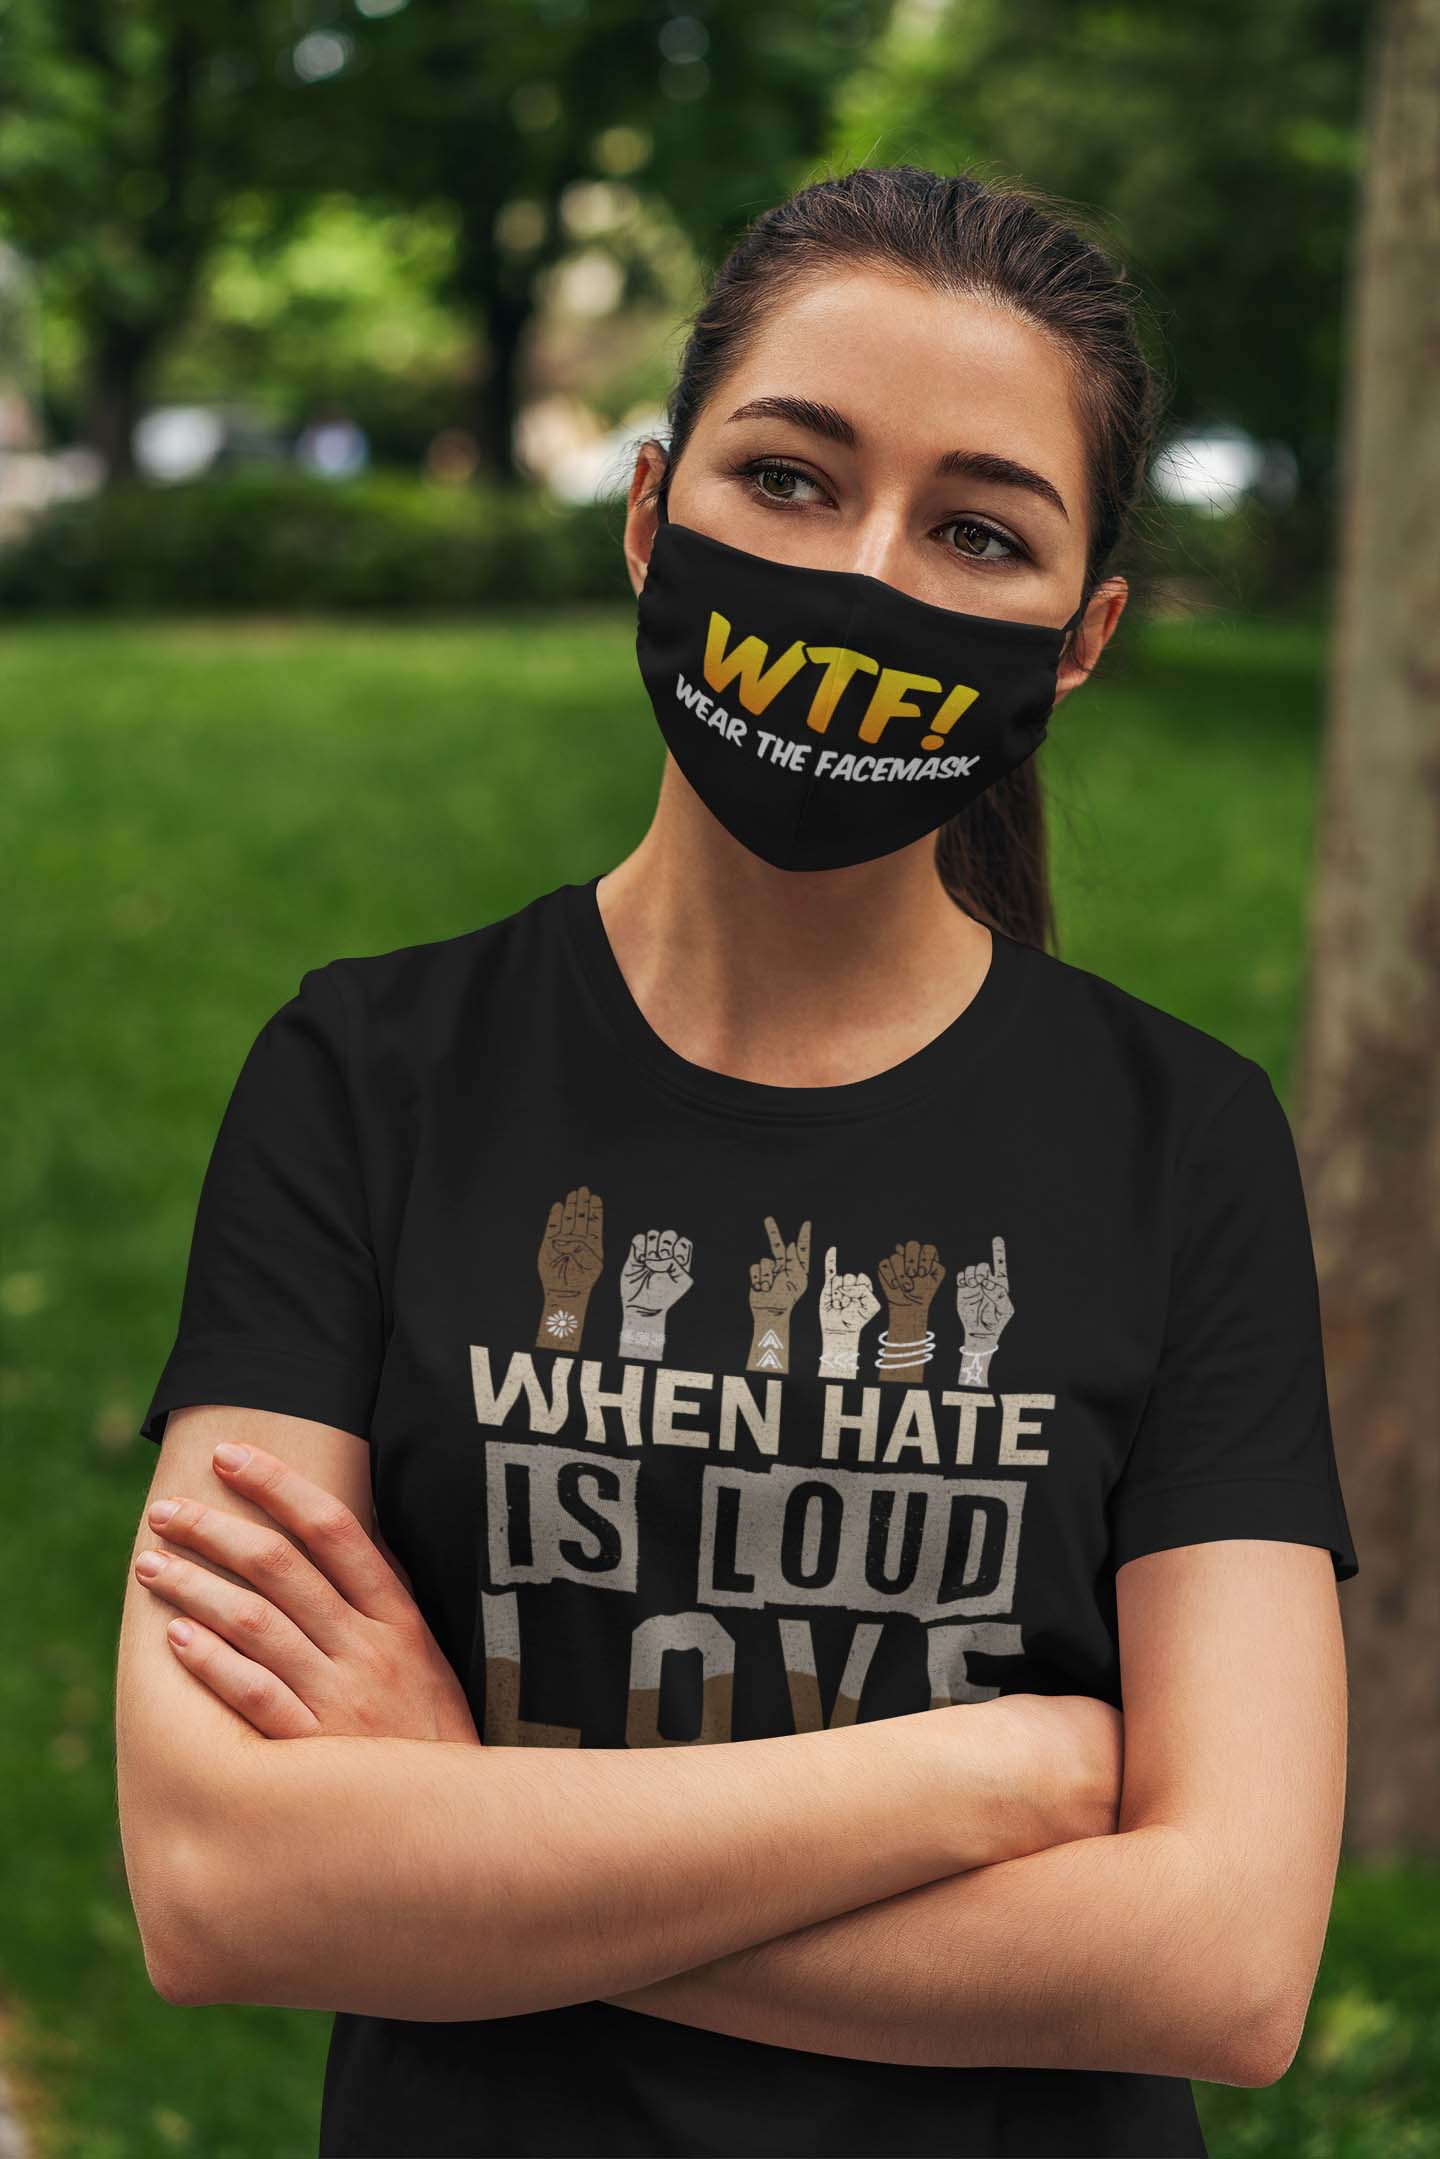 WTF wear the face mask anti pollution face mask 2